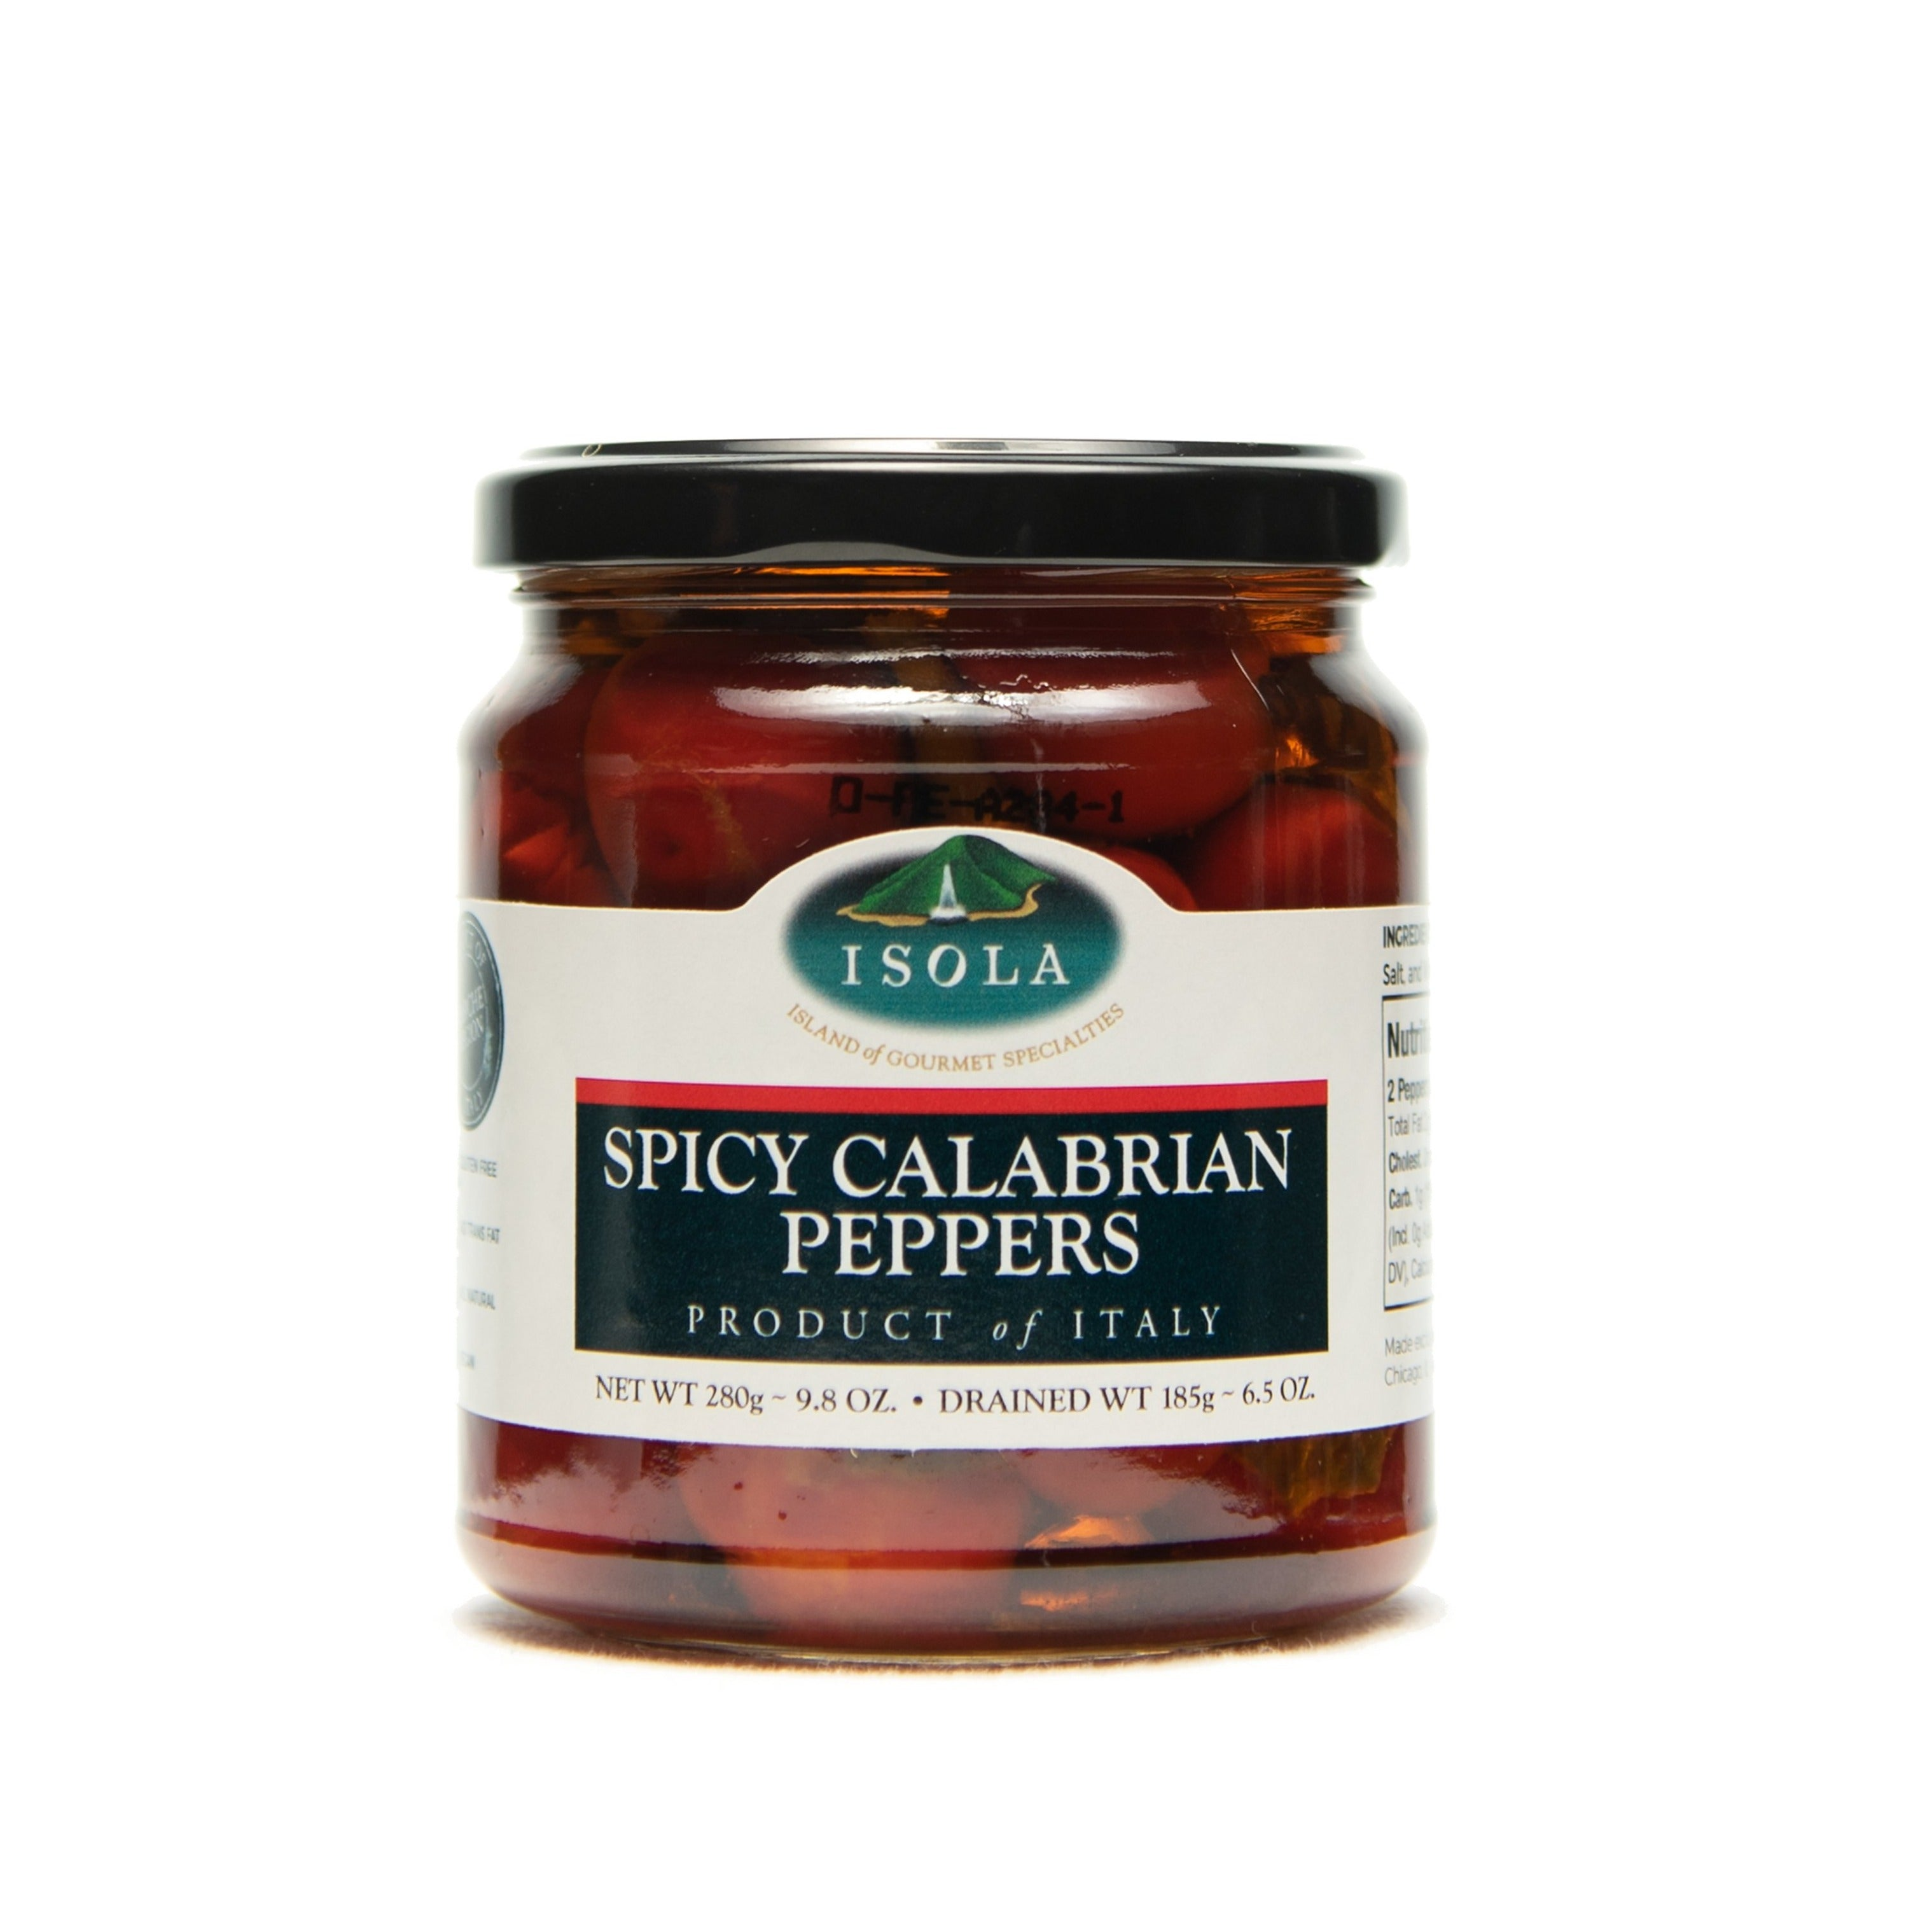 Spicy Calabrian Peppers